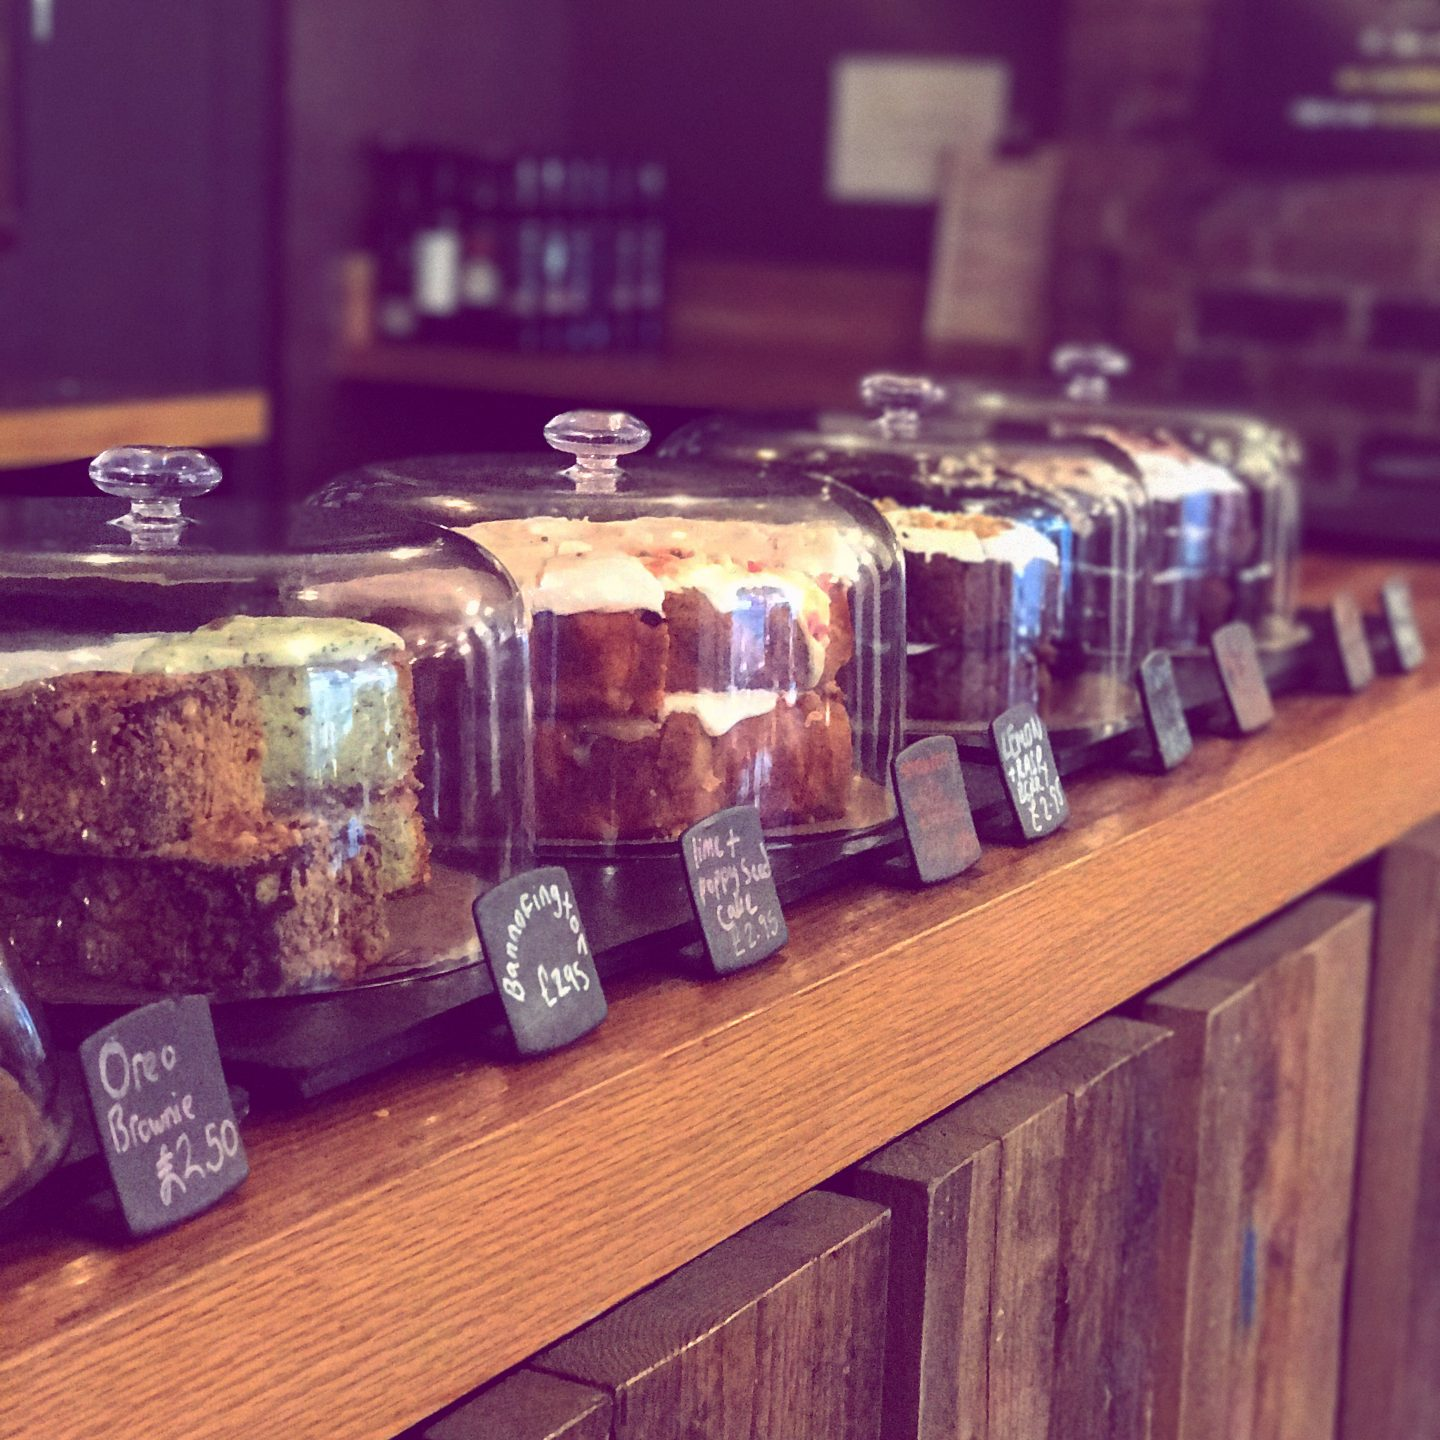 Calling all foodies – Steam Yard & Couch cafe reviews